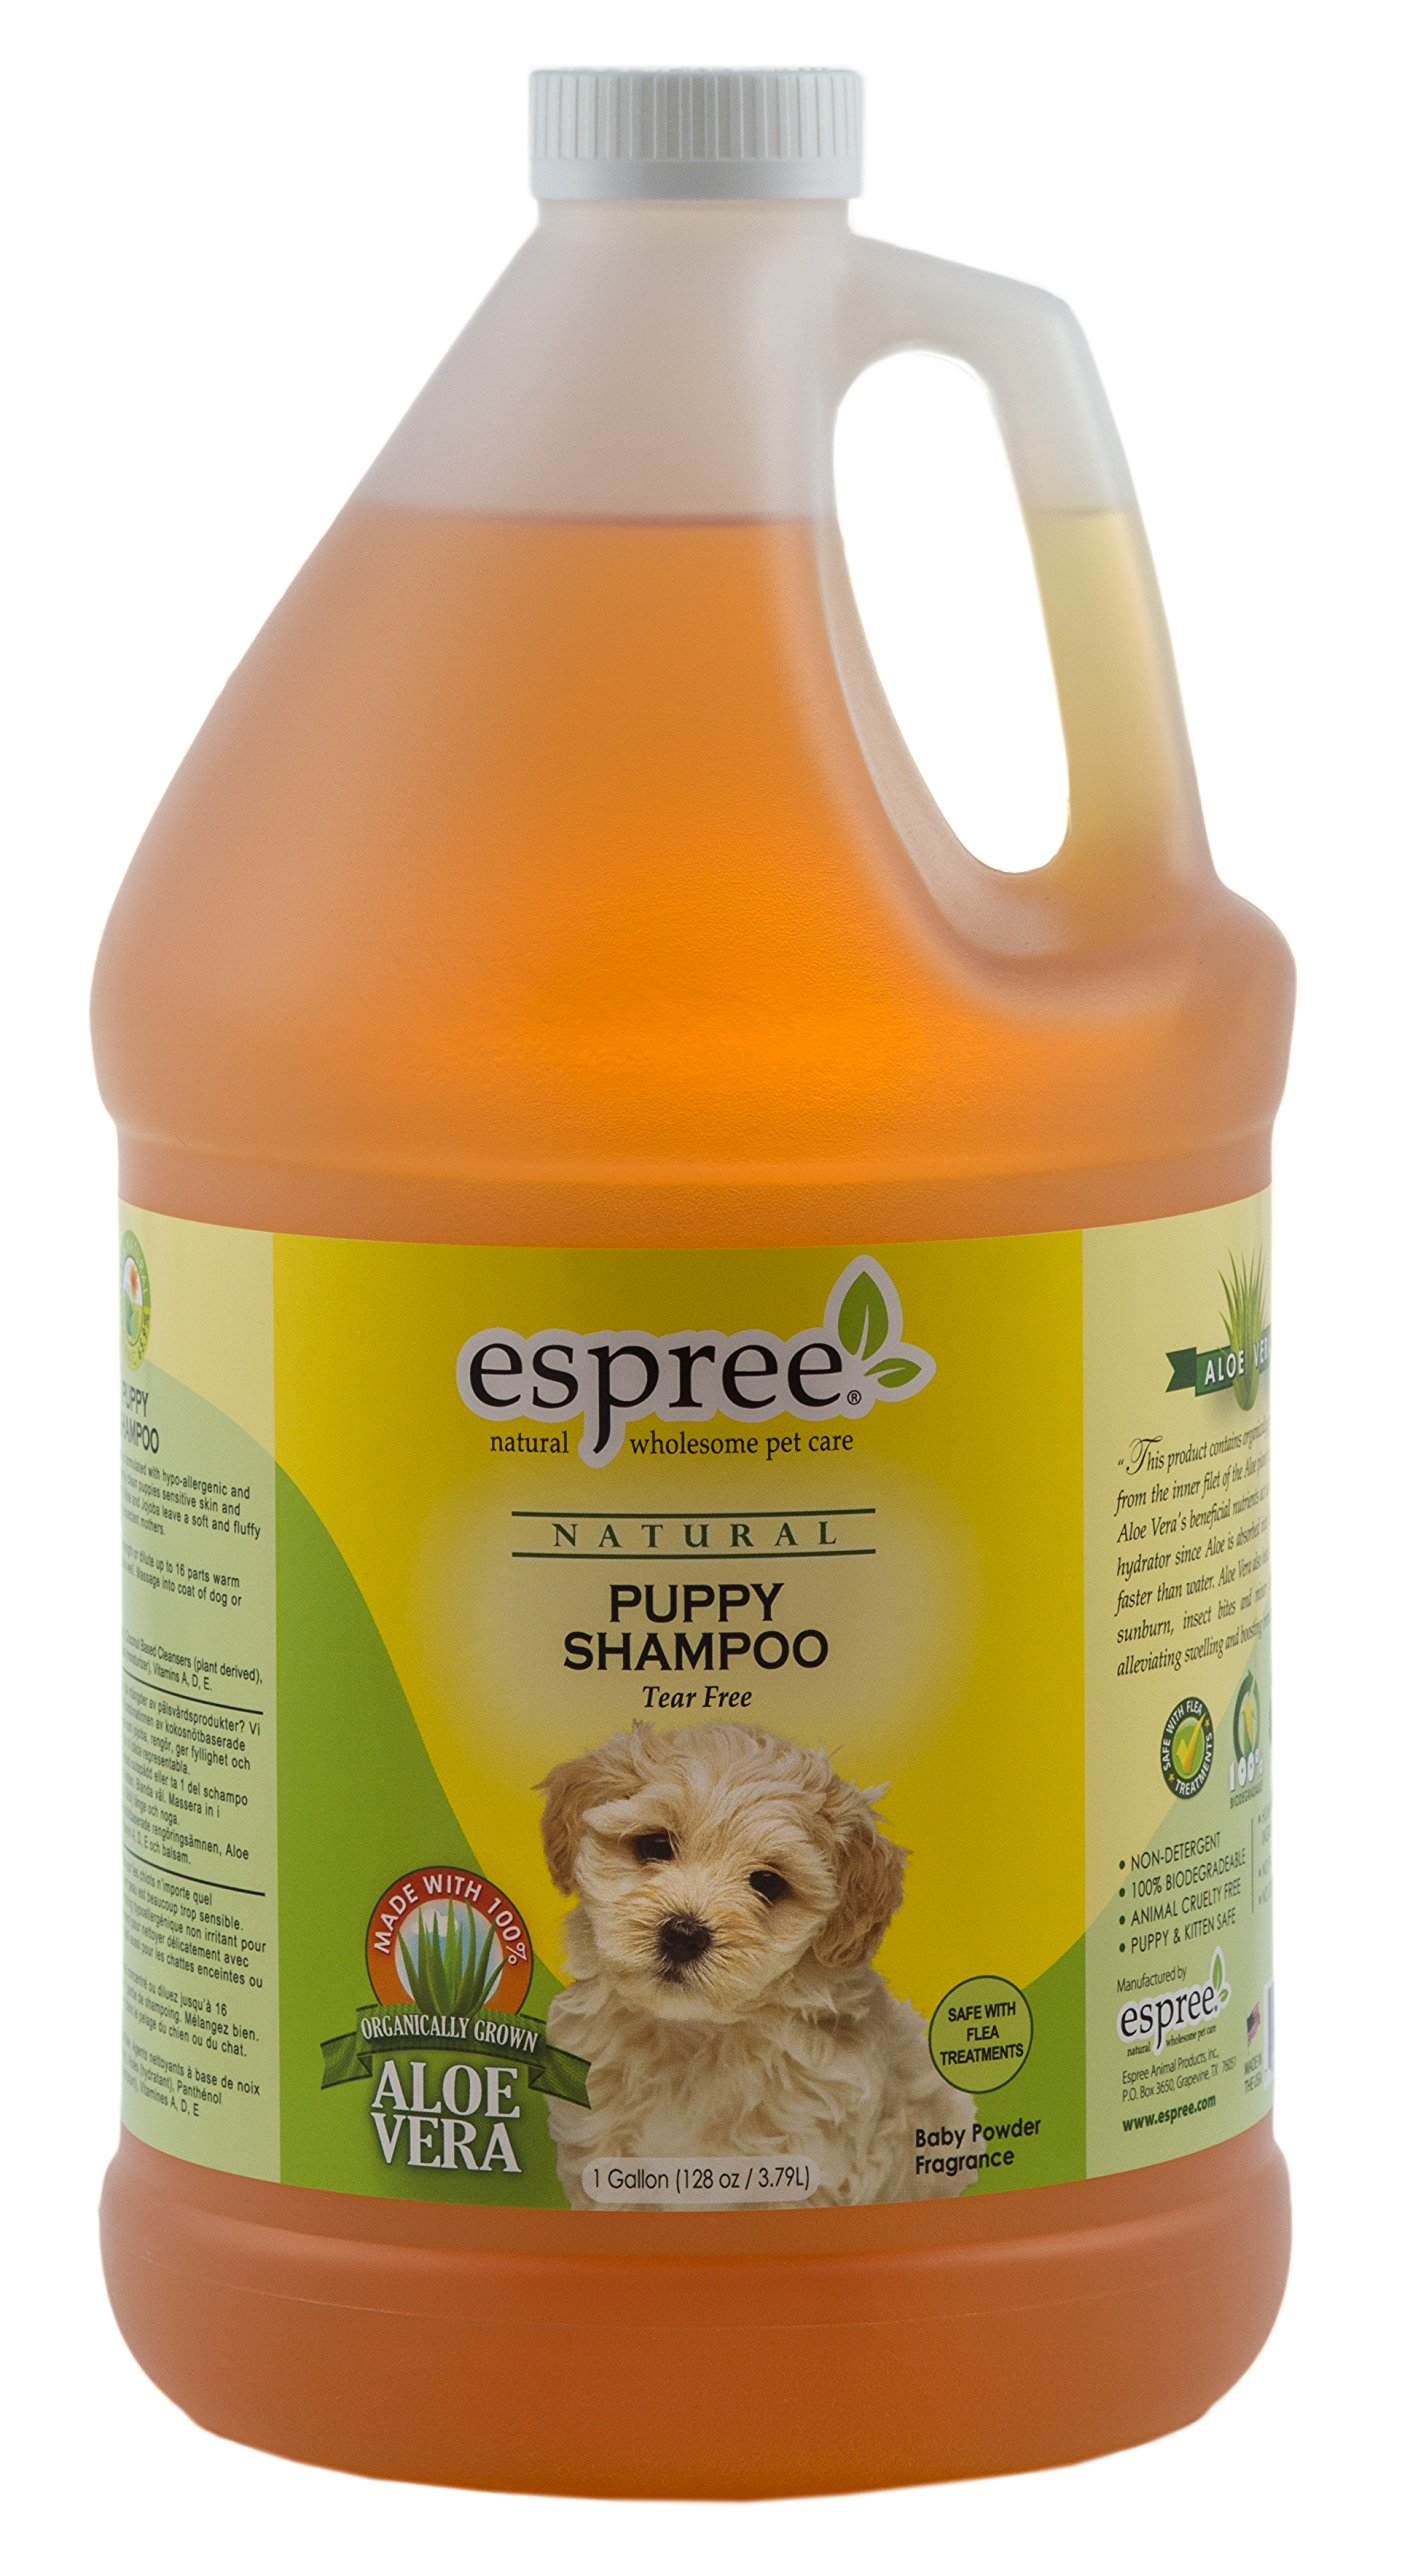 Espree Puppy Shampoo, 1 Gallon